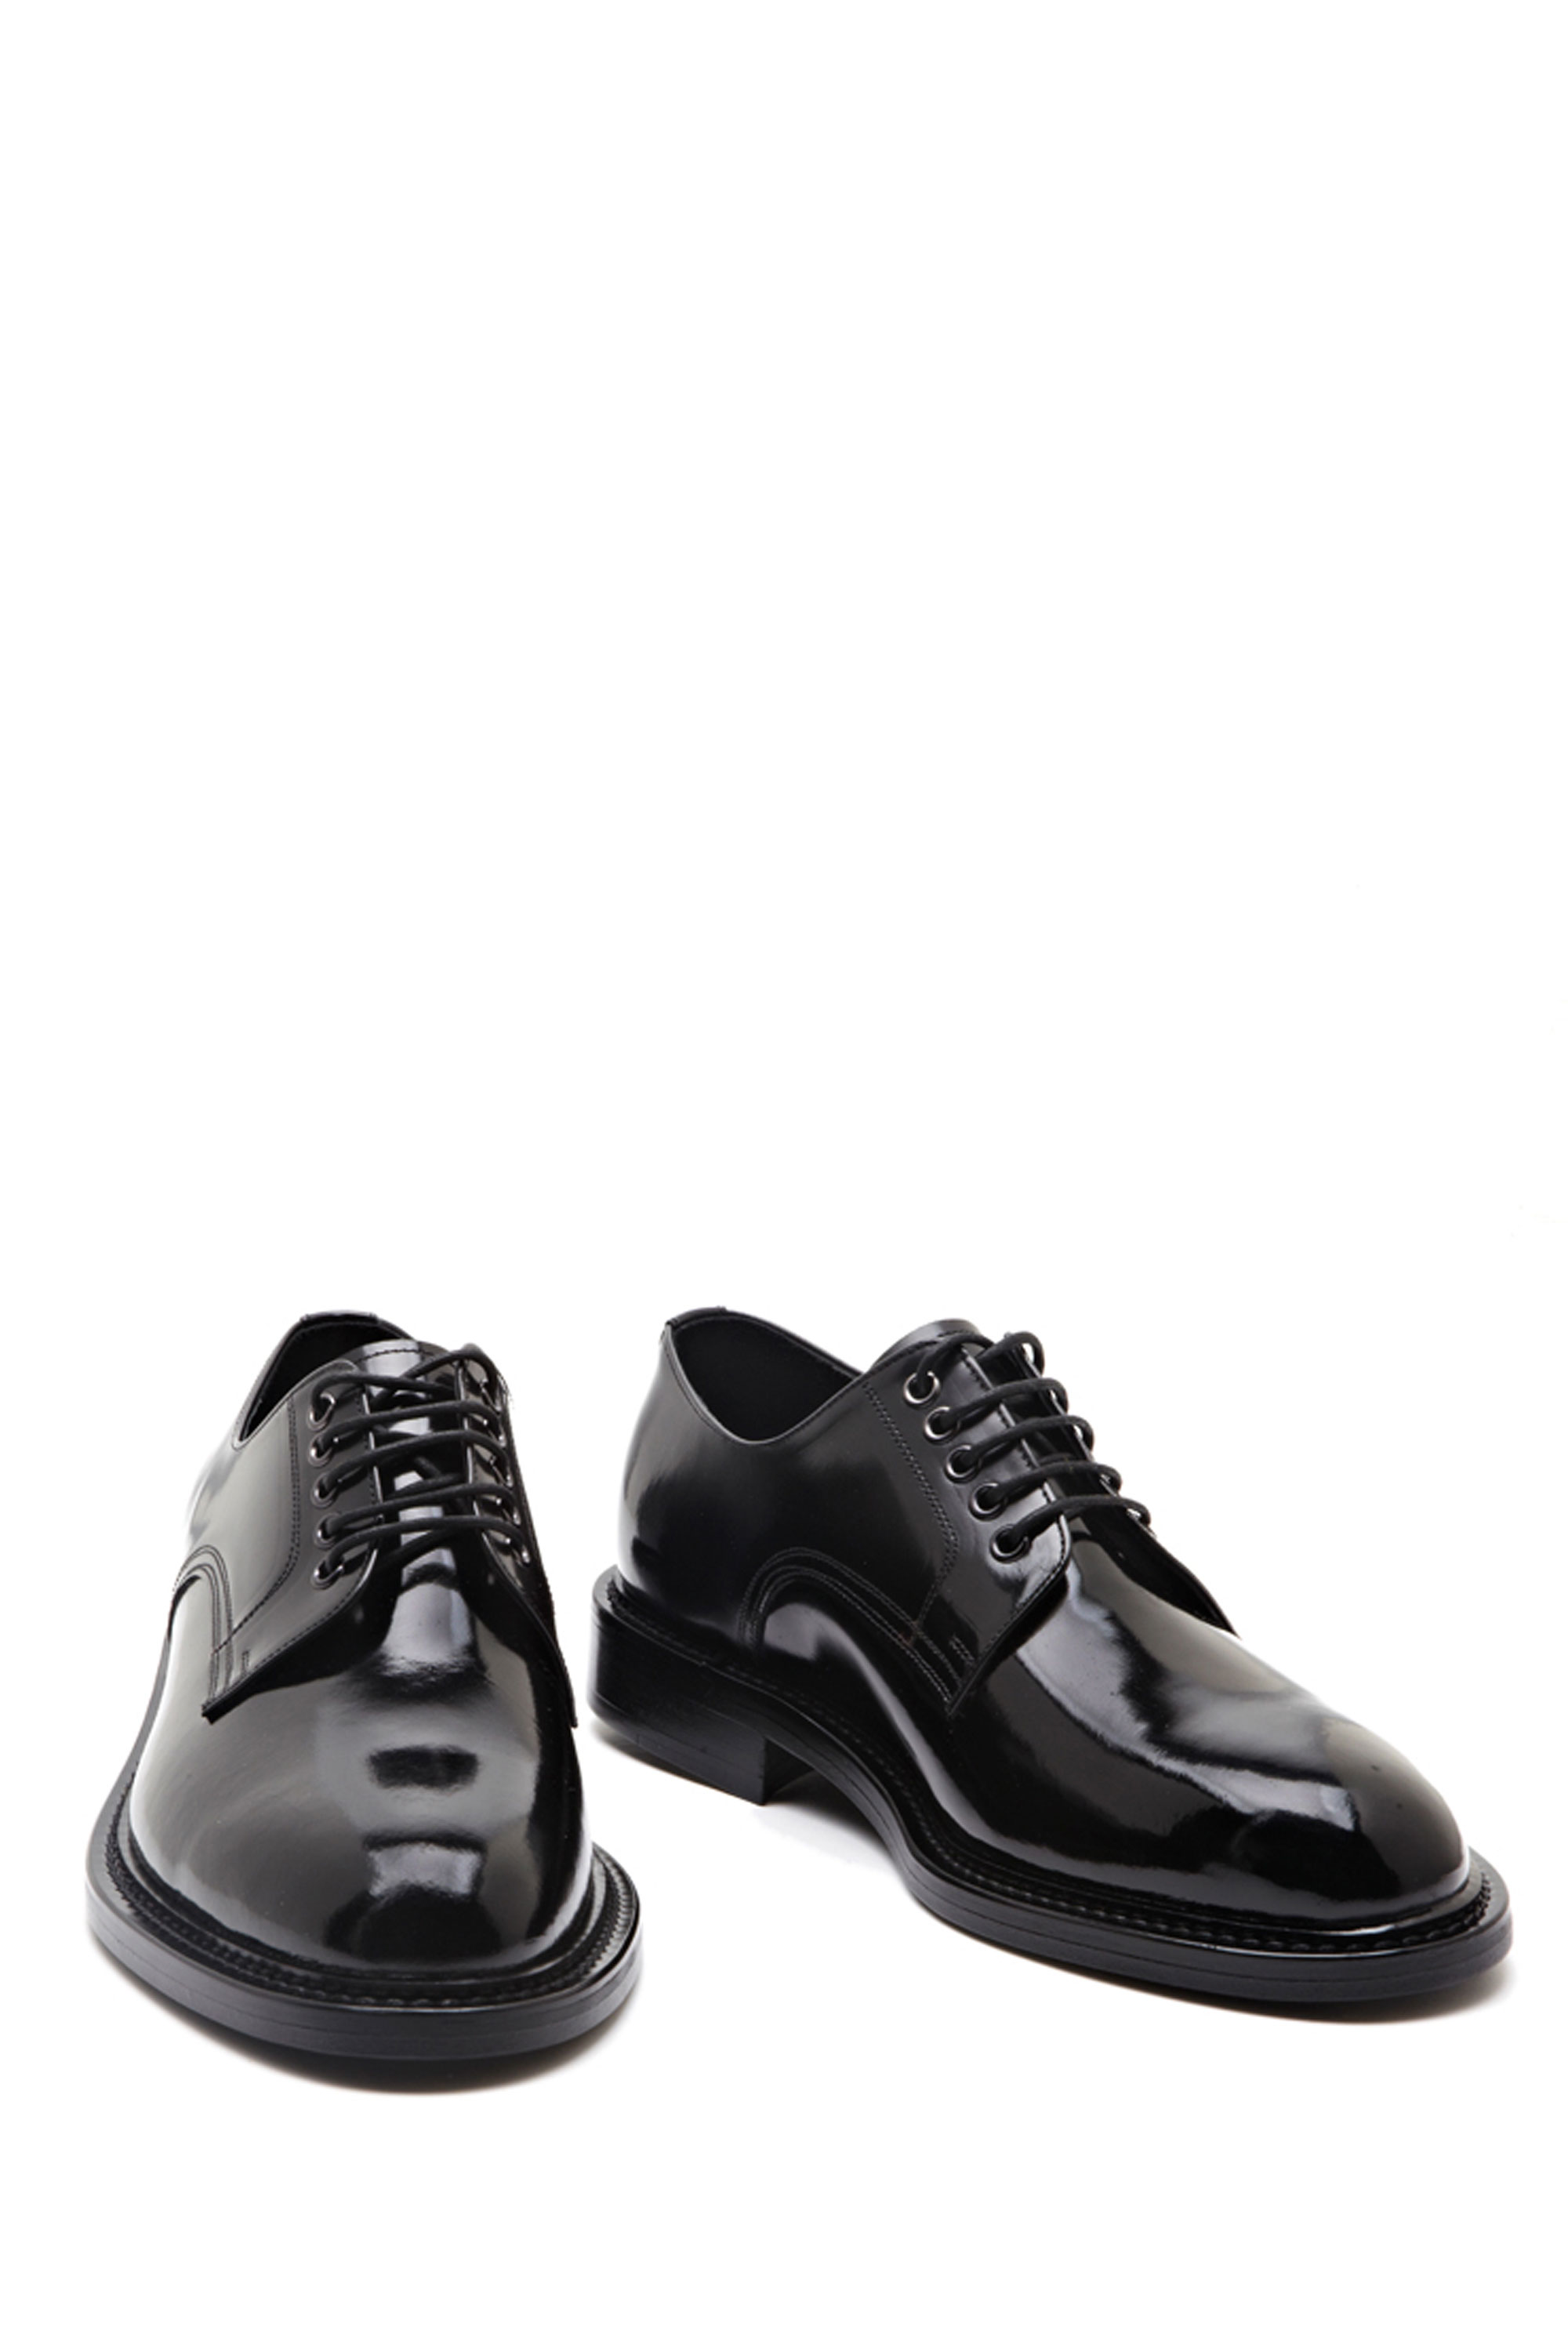 Saint lauren* laceup derby shoes